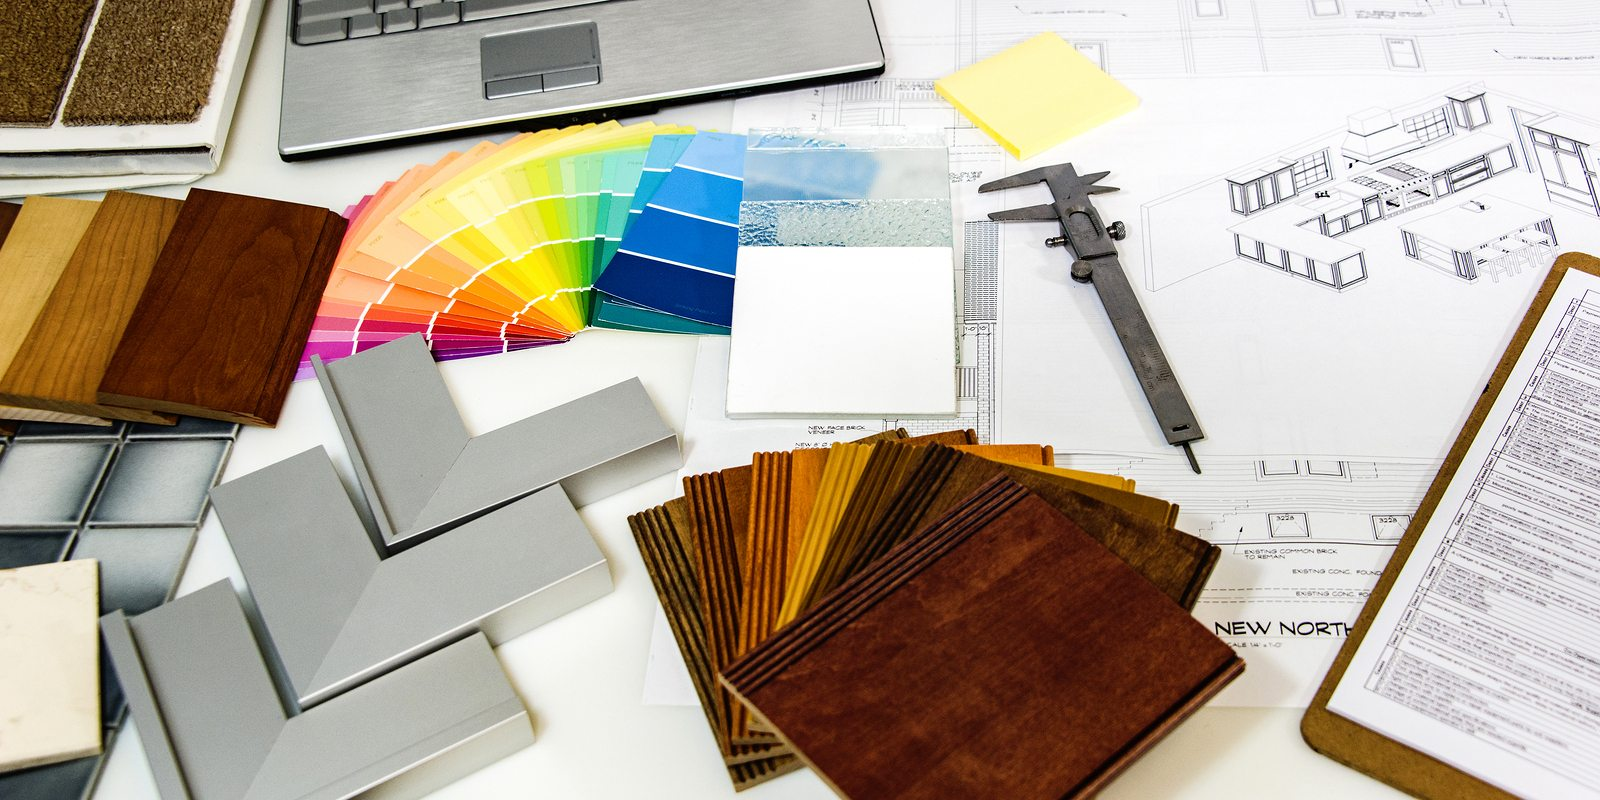 Renovation. Renovation home. Renovation concept. Home remodel material. Interior home remodeling color selection. Samples of home renovation materials. Interior home renovation.